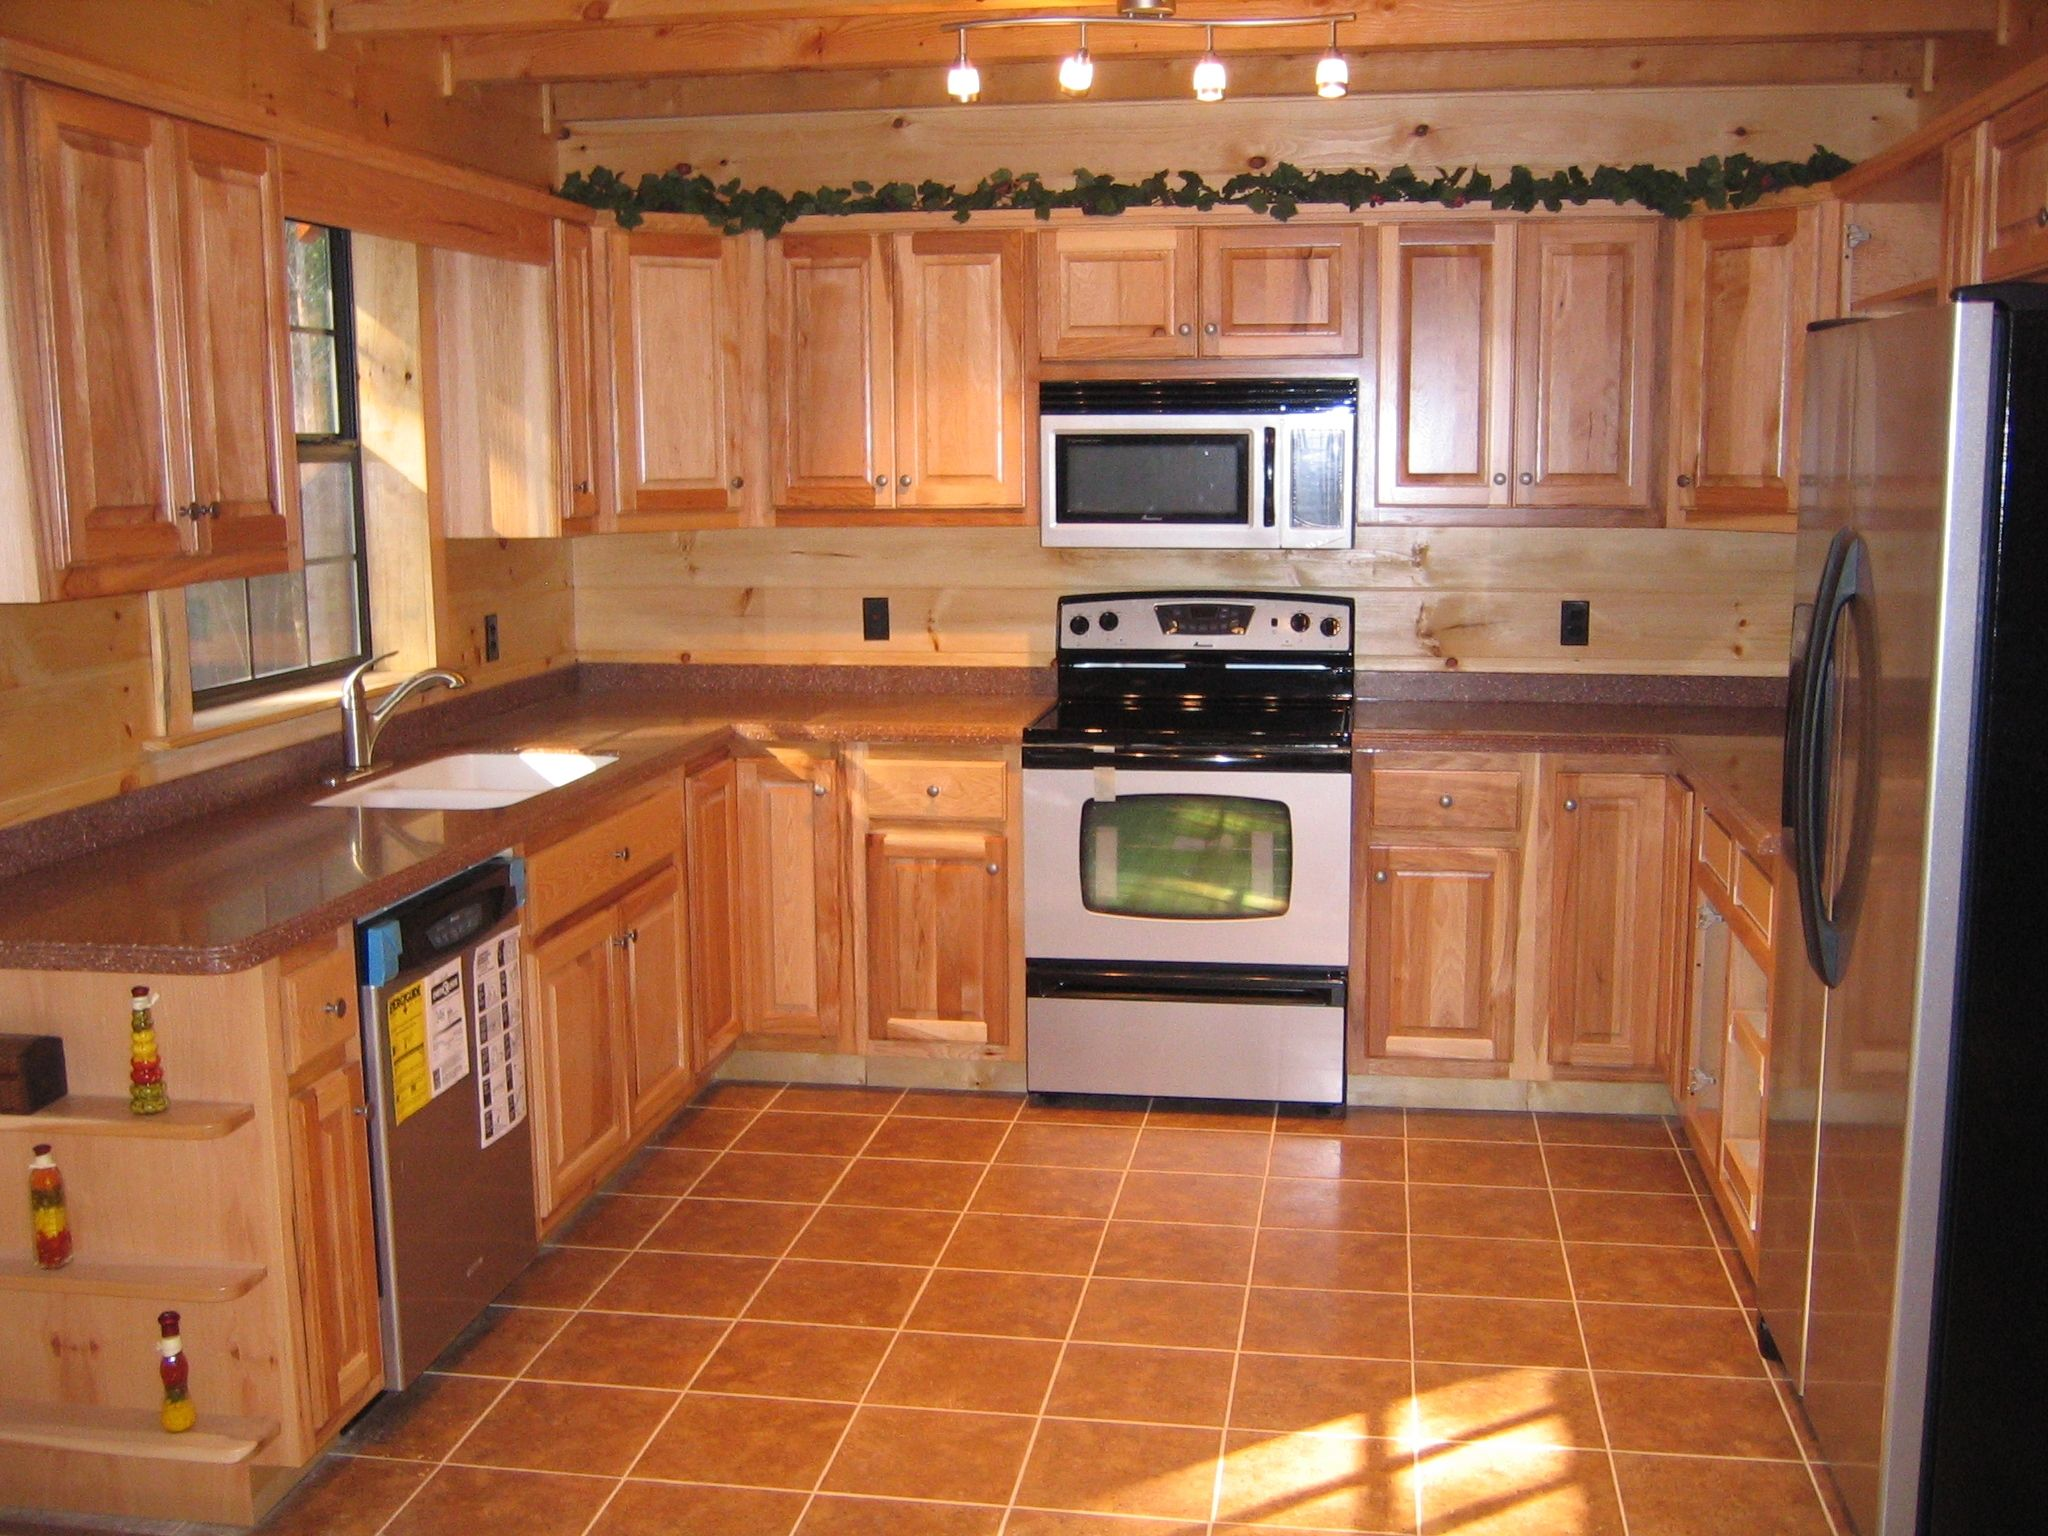 Cedar wood kitchen cabinets wintergreen condo decor u reno